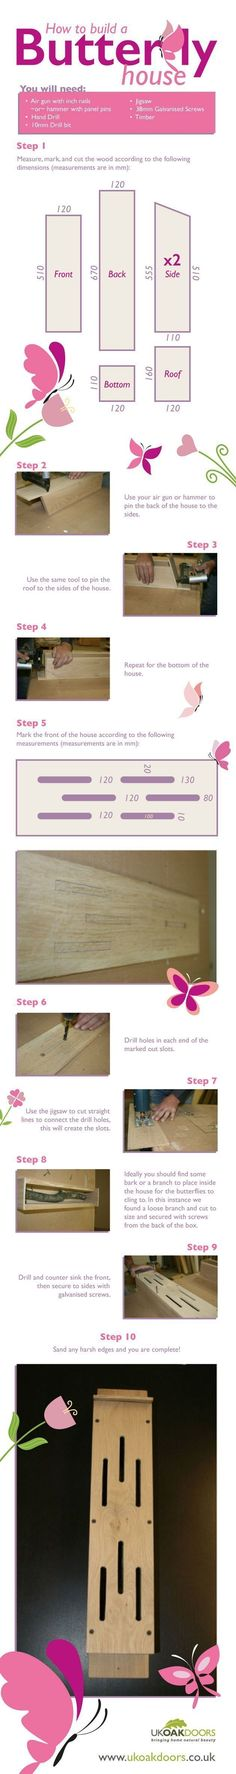 How to build a butterfly house in ten simple steps - with photos #butterflies #DIY #infographics #howtobuildabirdhouse